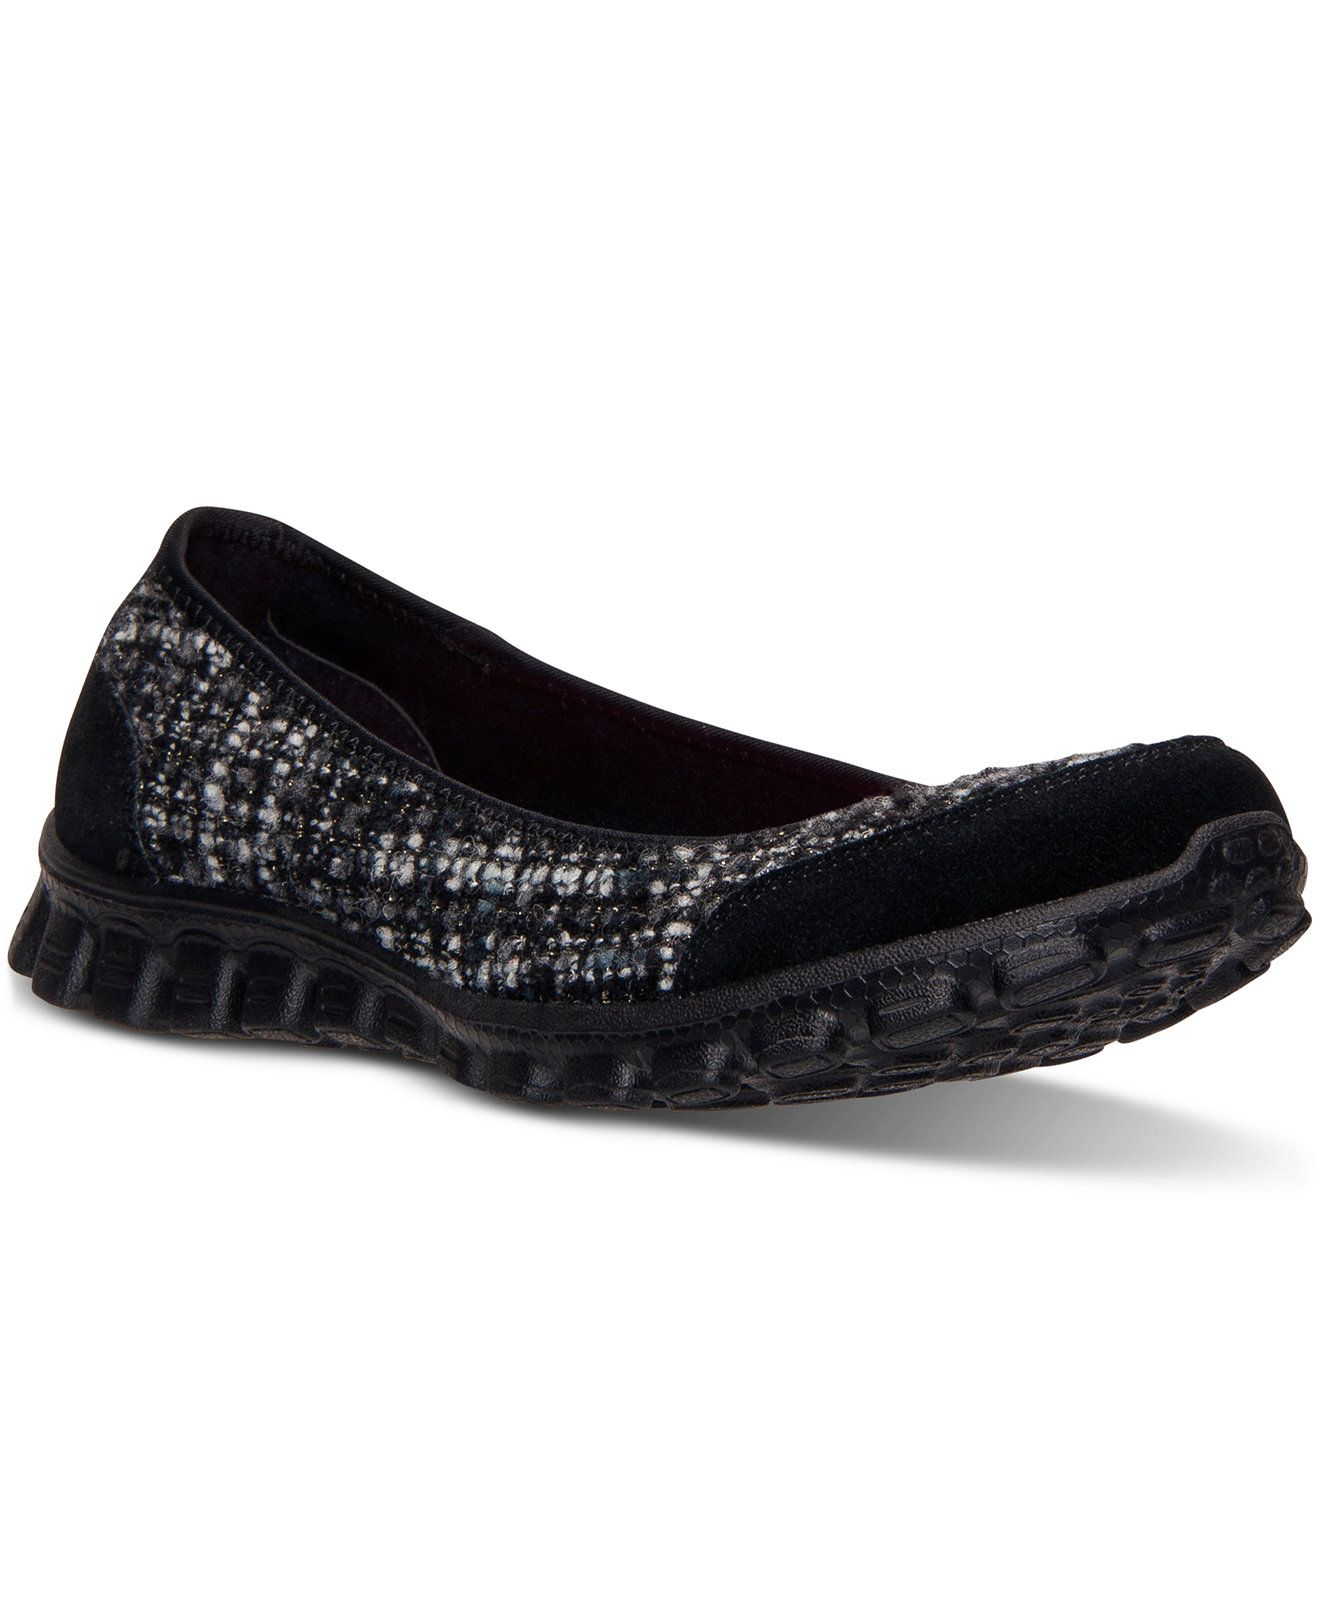 8d91942689b Skechers Women s Yours Truly Ballet Flats from Finish Line - Finish Line  Athletic Shoes - Shoes - Macy s